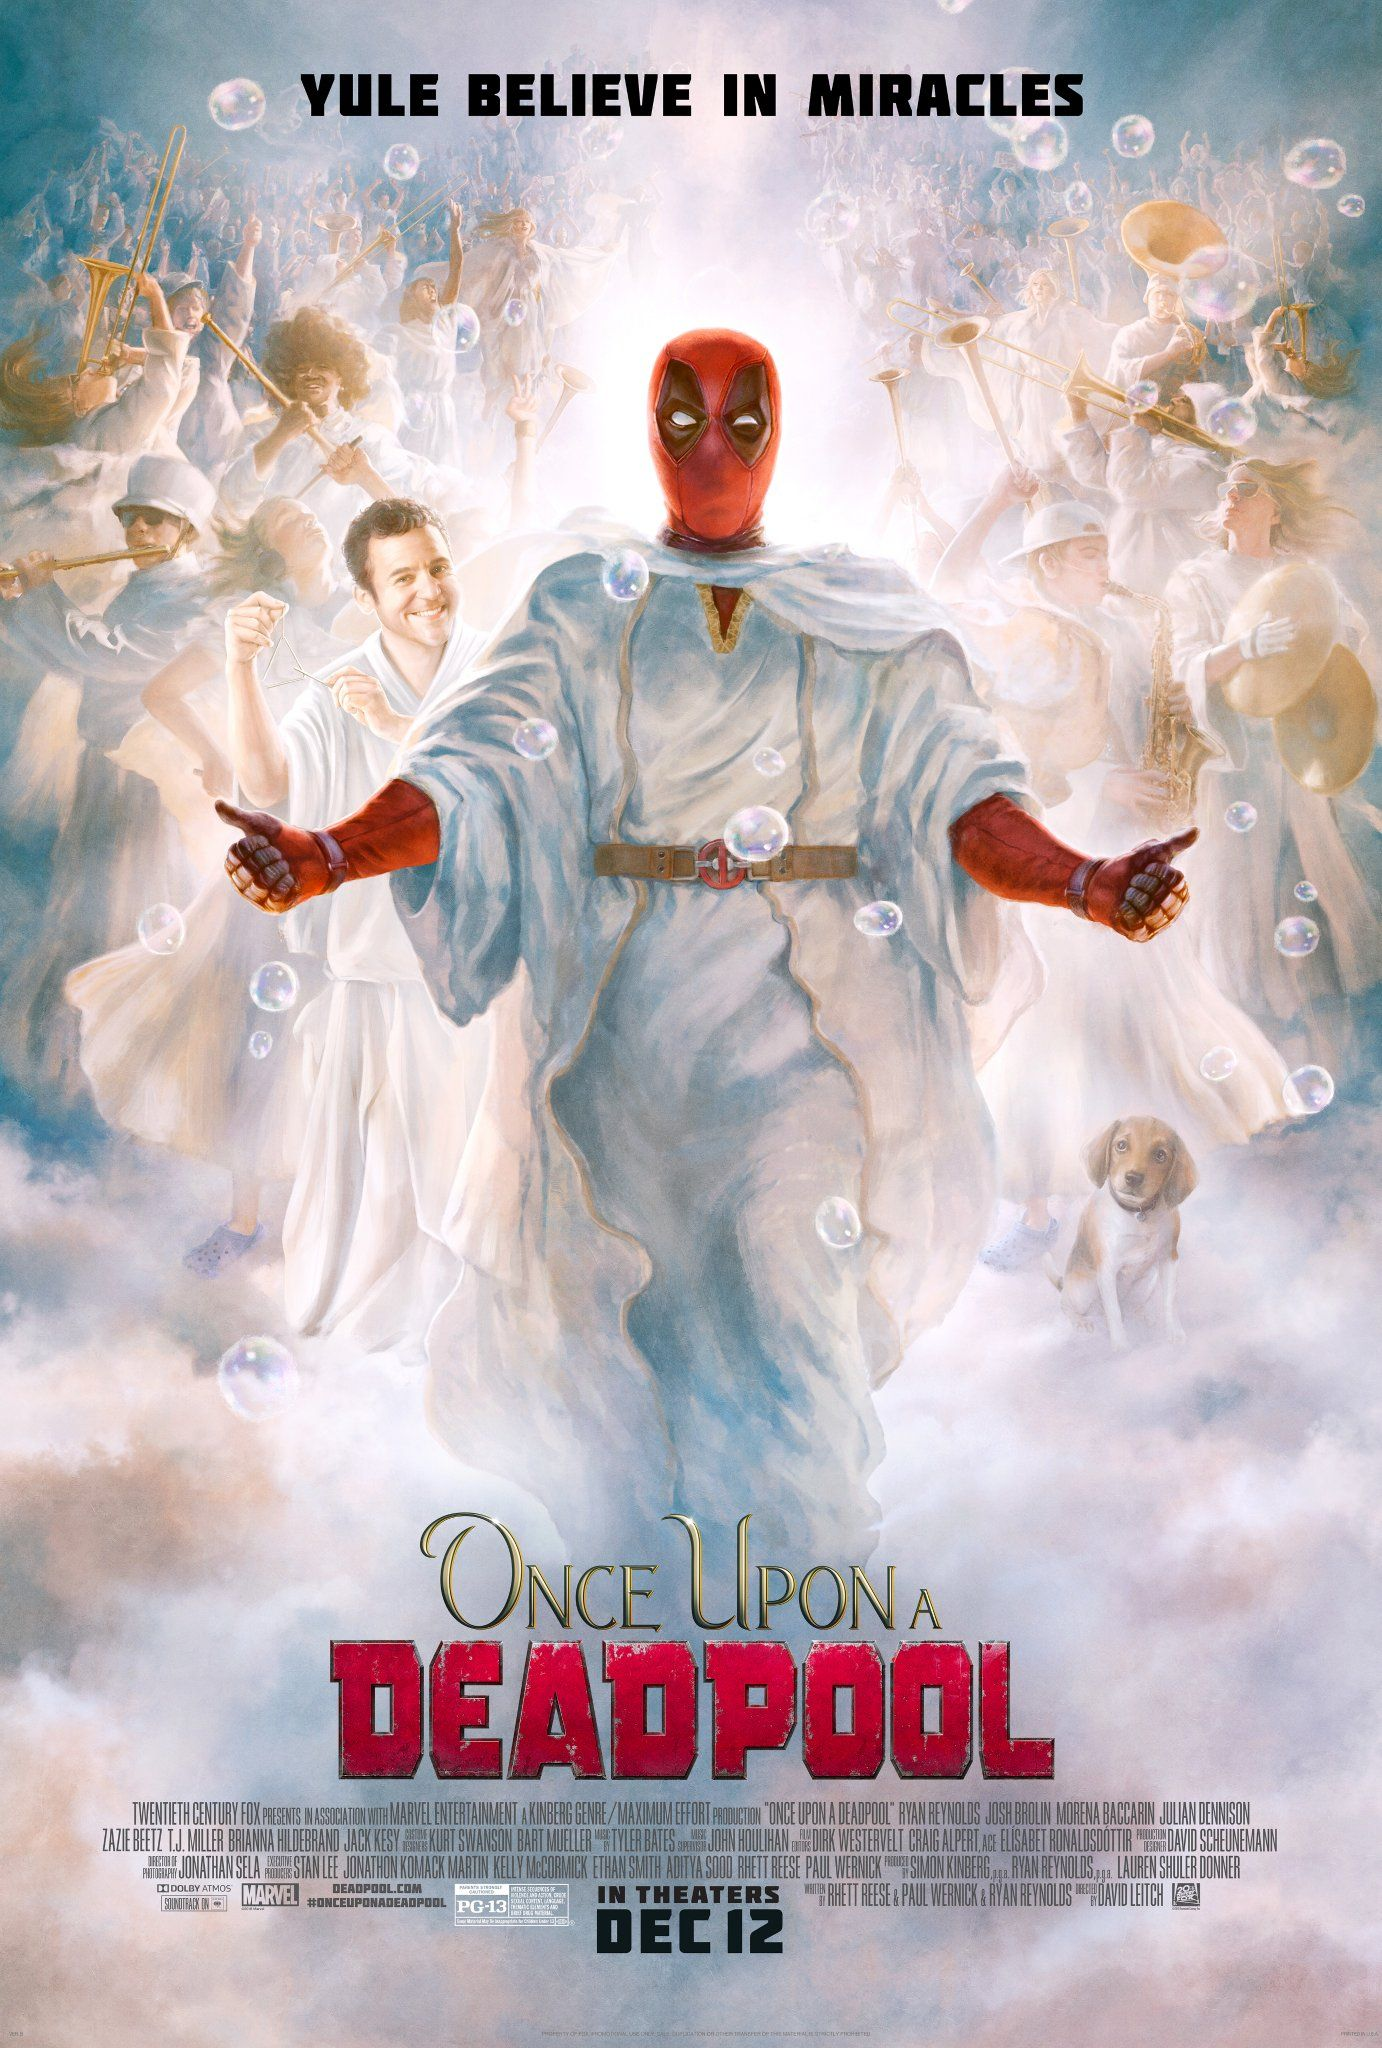 Heavenly New Once Upon A Deadpool Poster Promises Yule Believe In